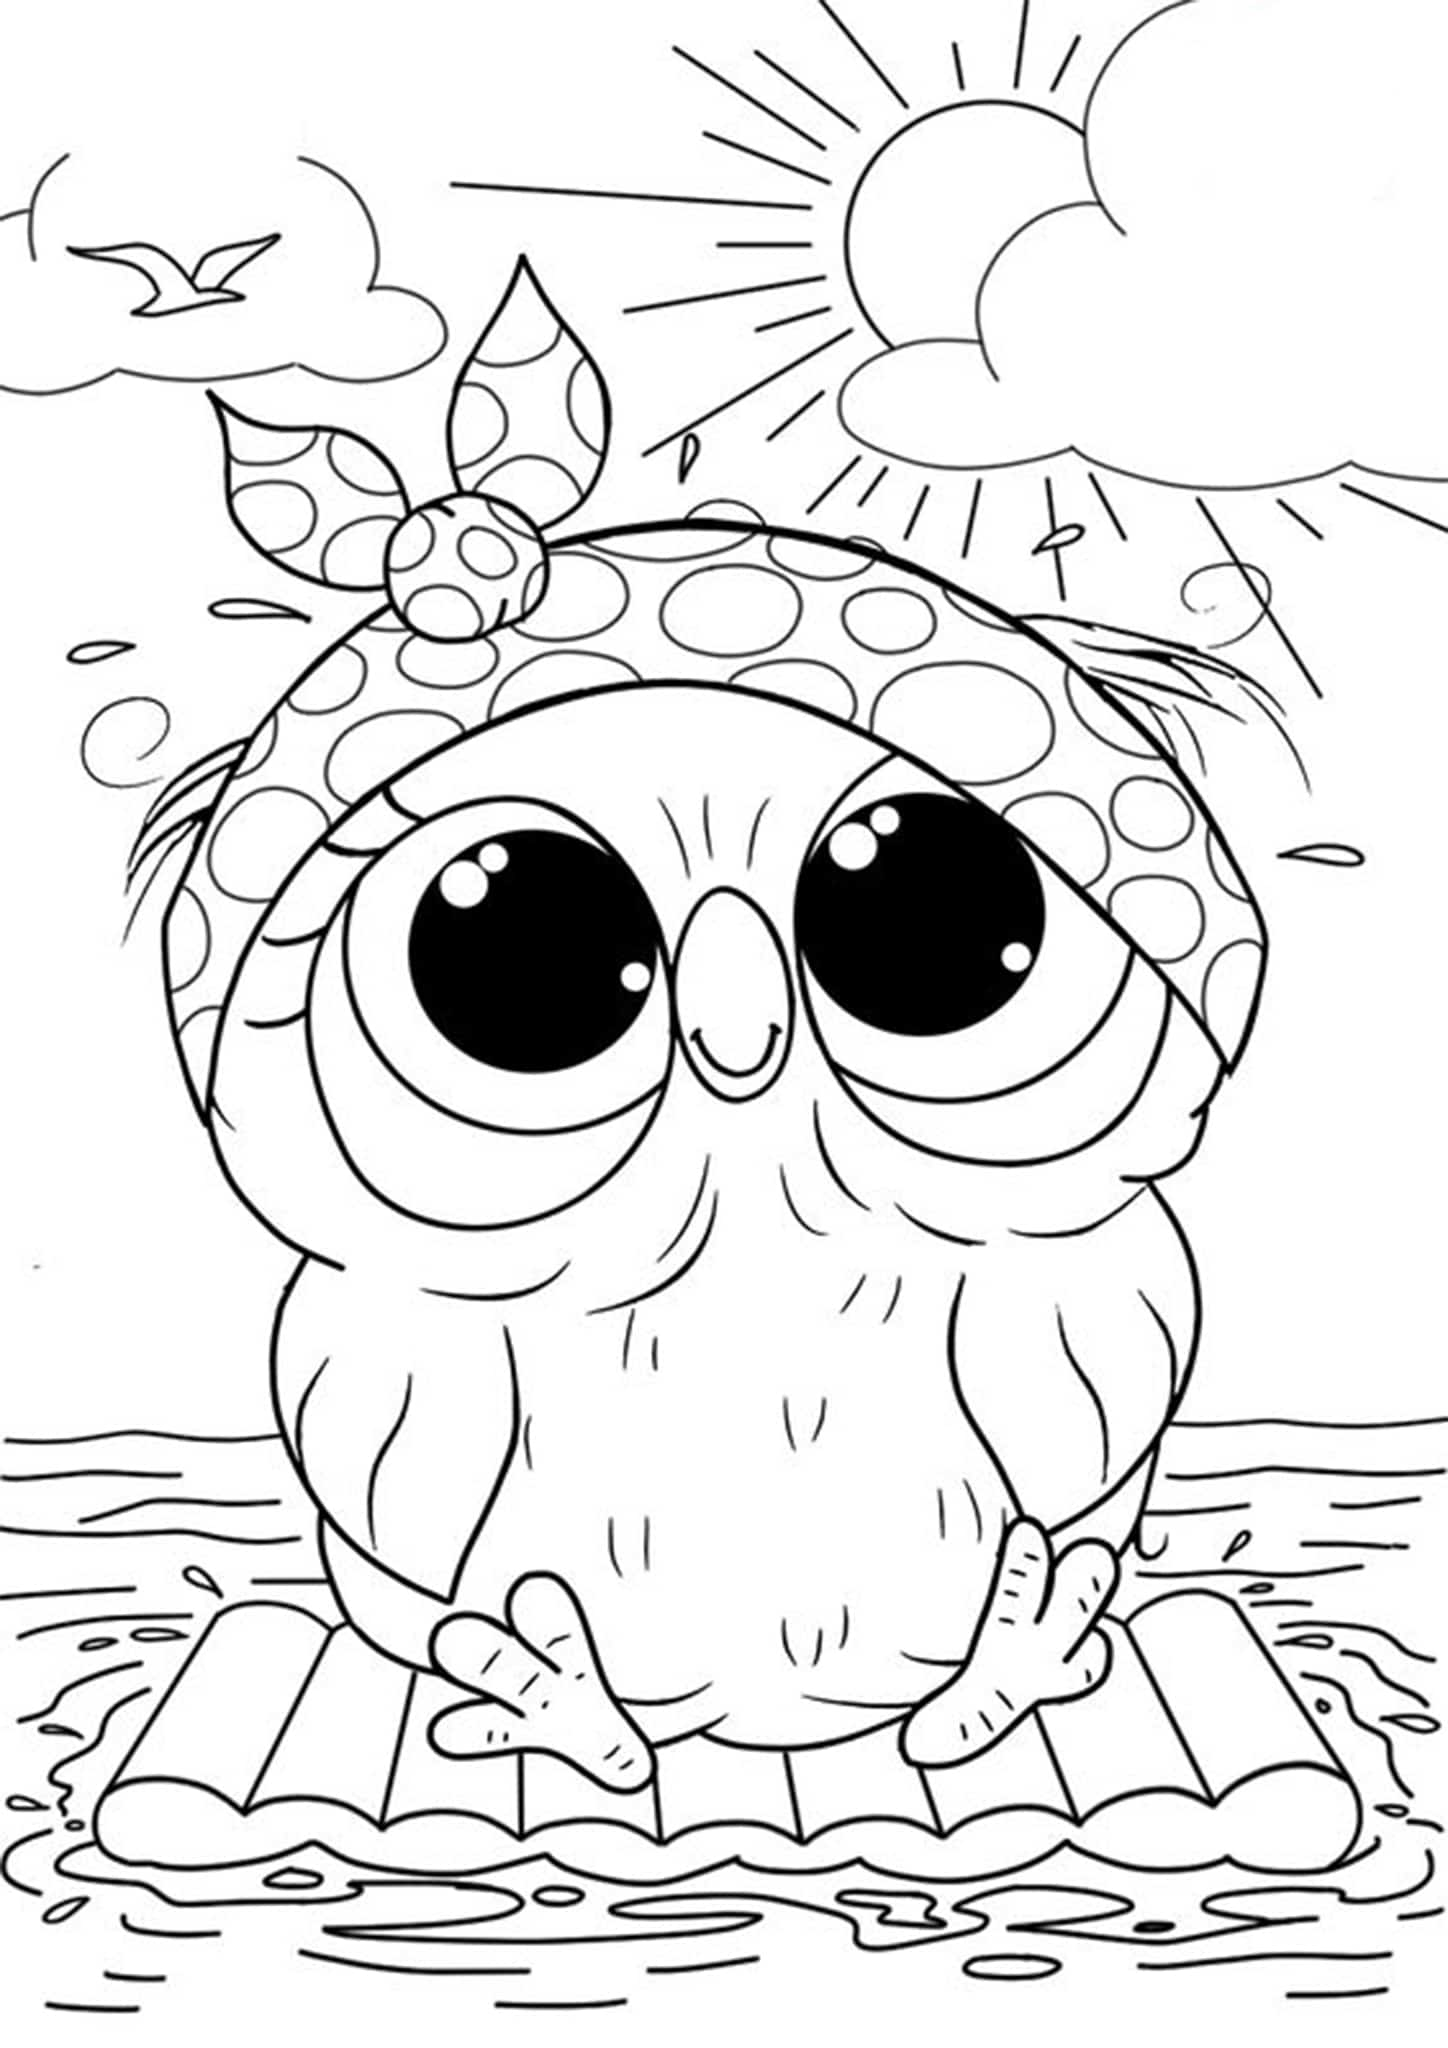 free printable coloring pictures 20 free printable scooby doo coloring pages printable coloring free pictures